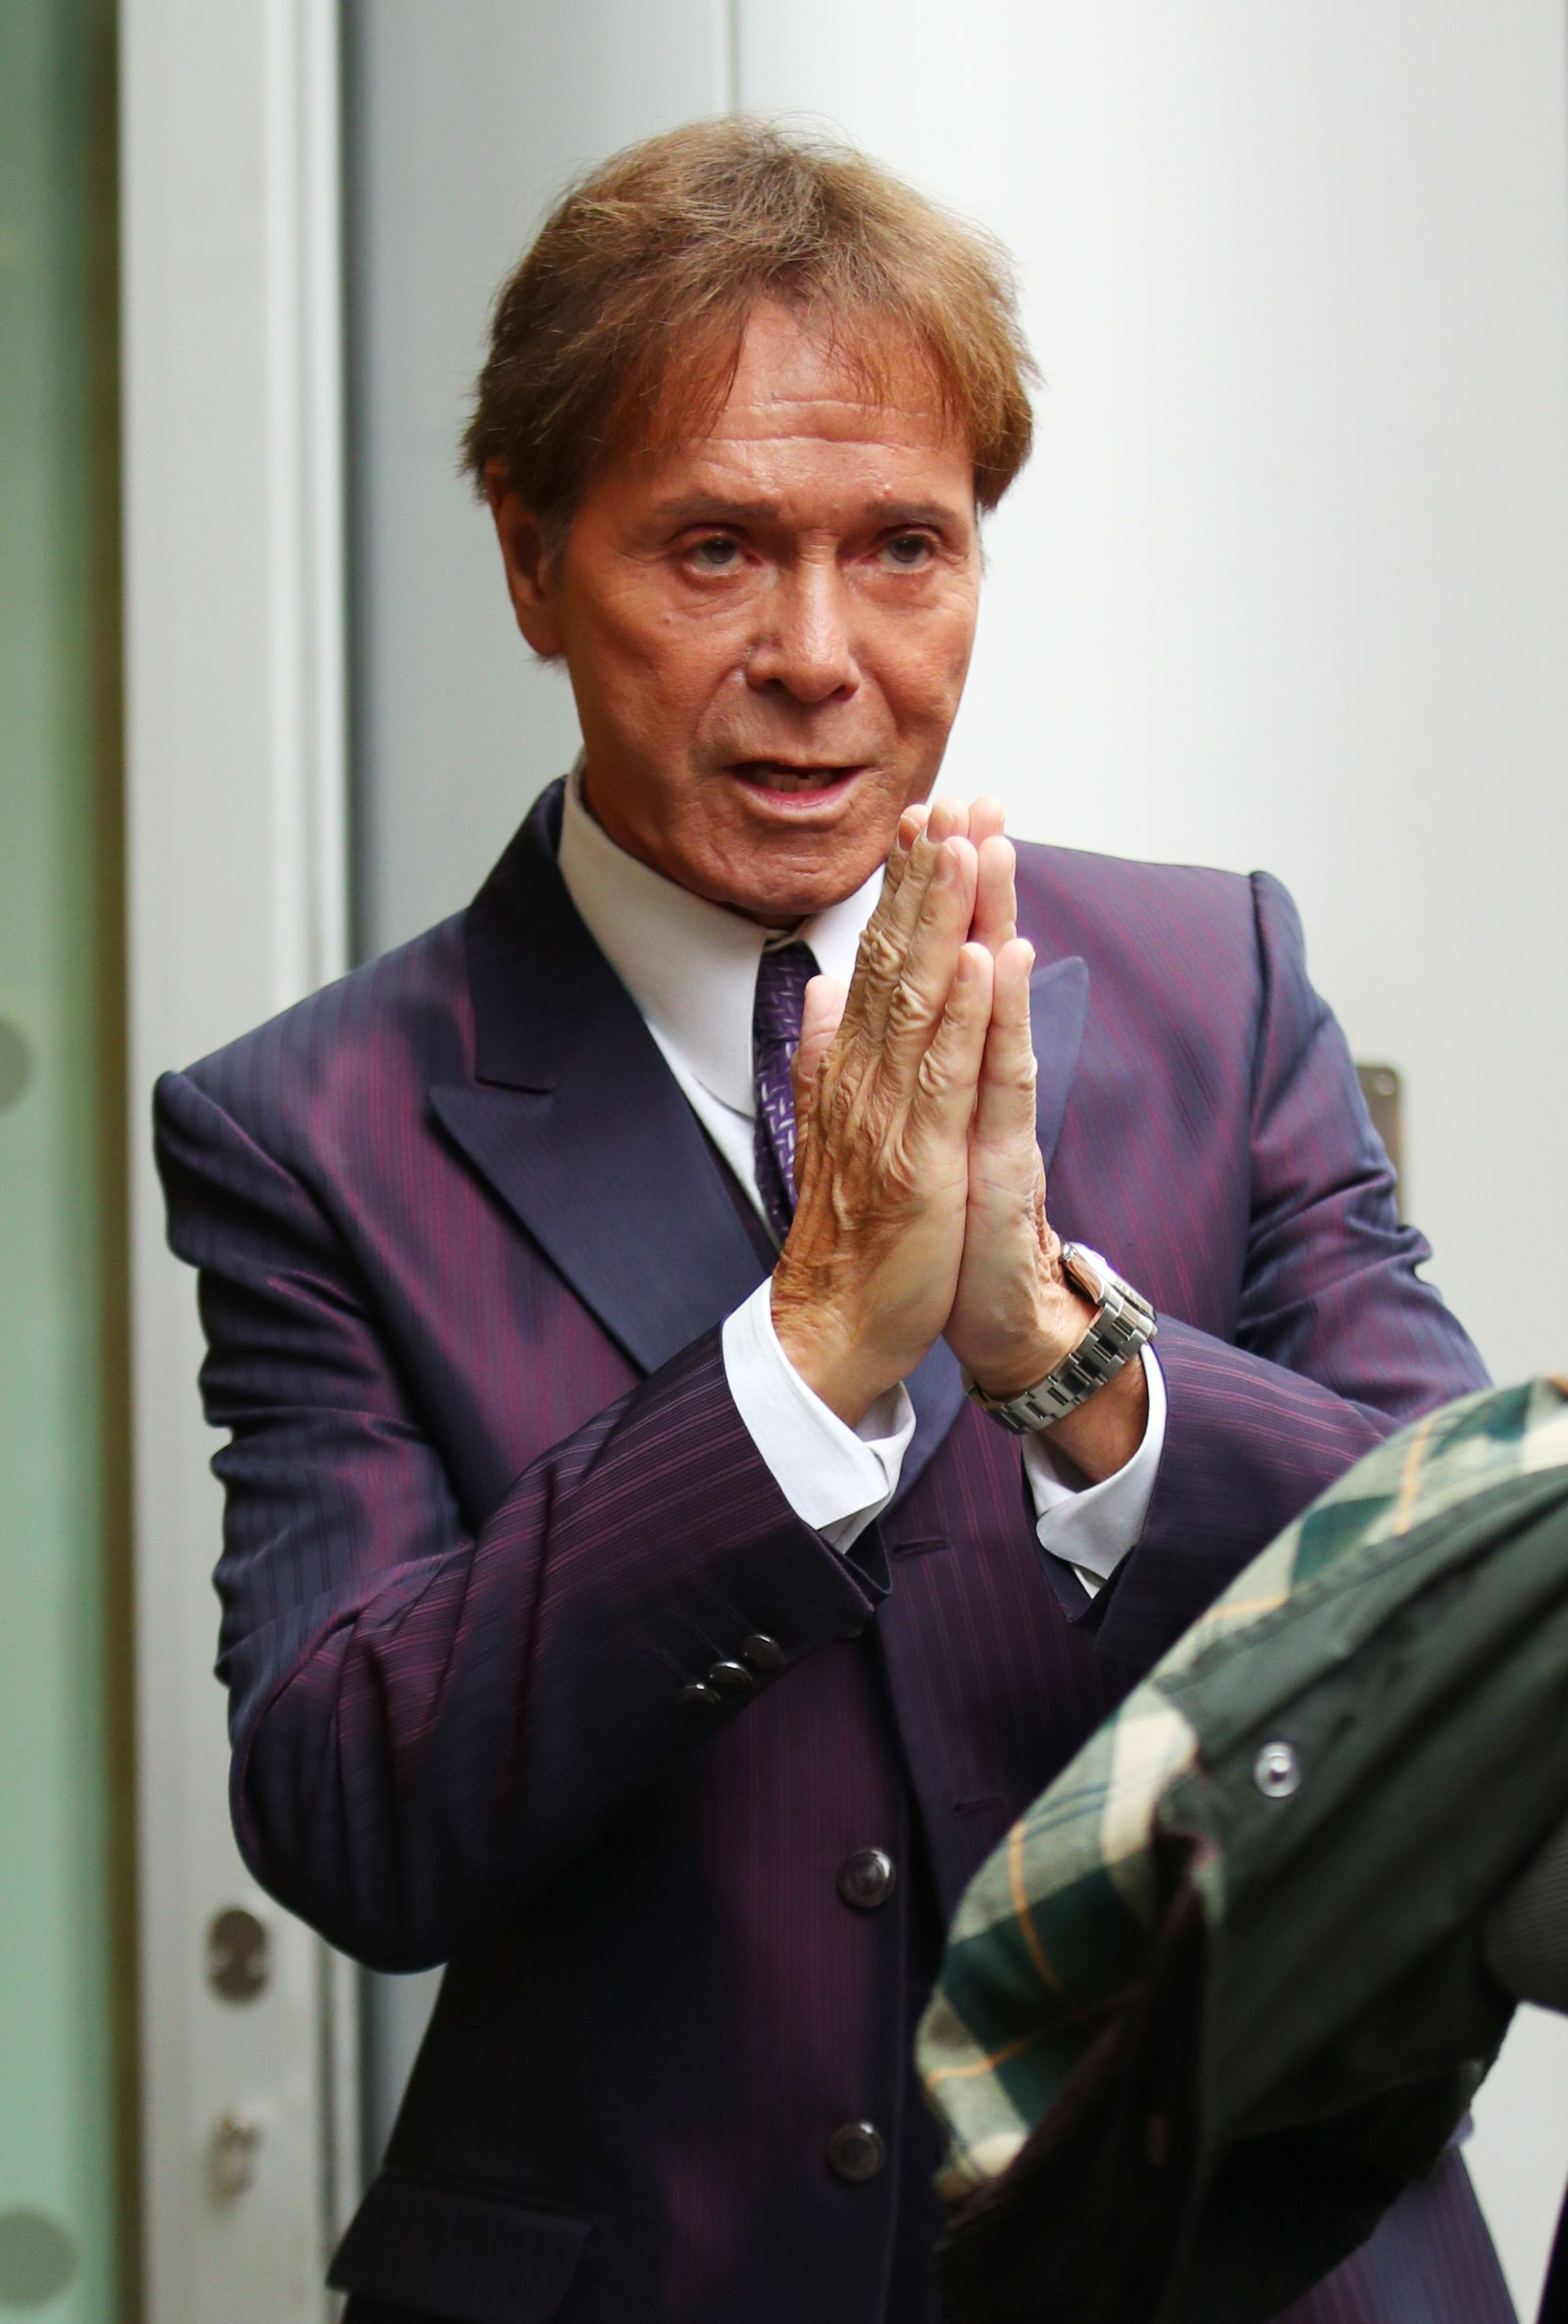 Sir Cliff Richard Breaks Down As He Gives Evidence In BBC Court